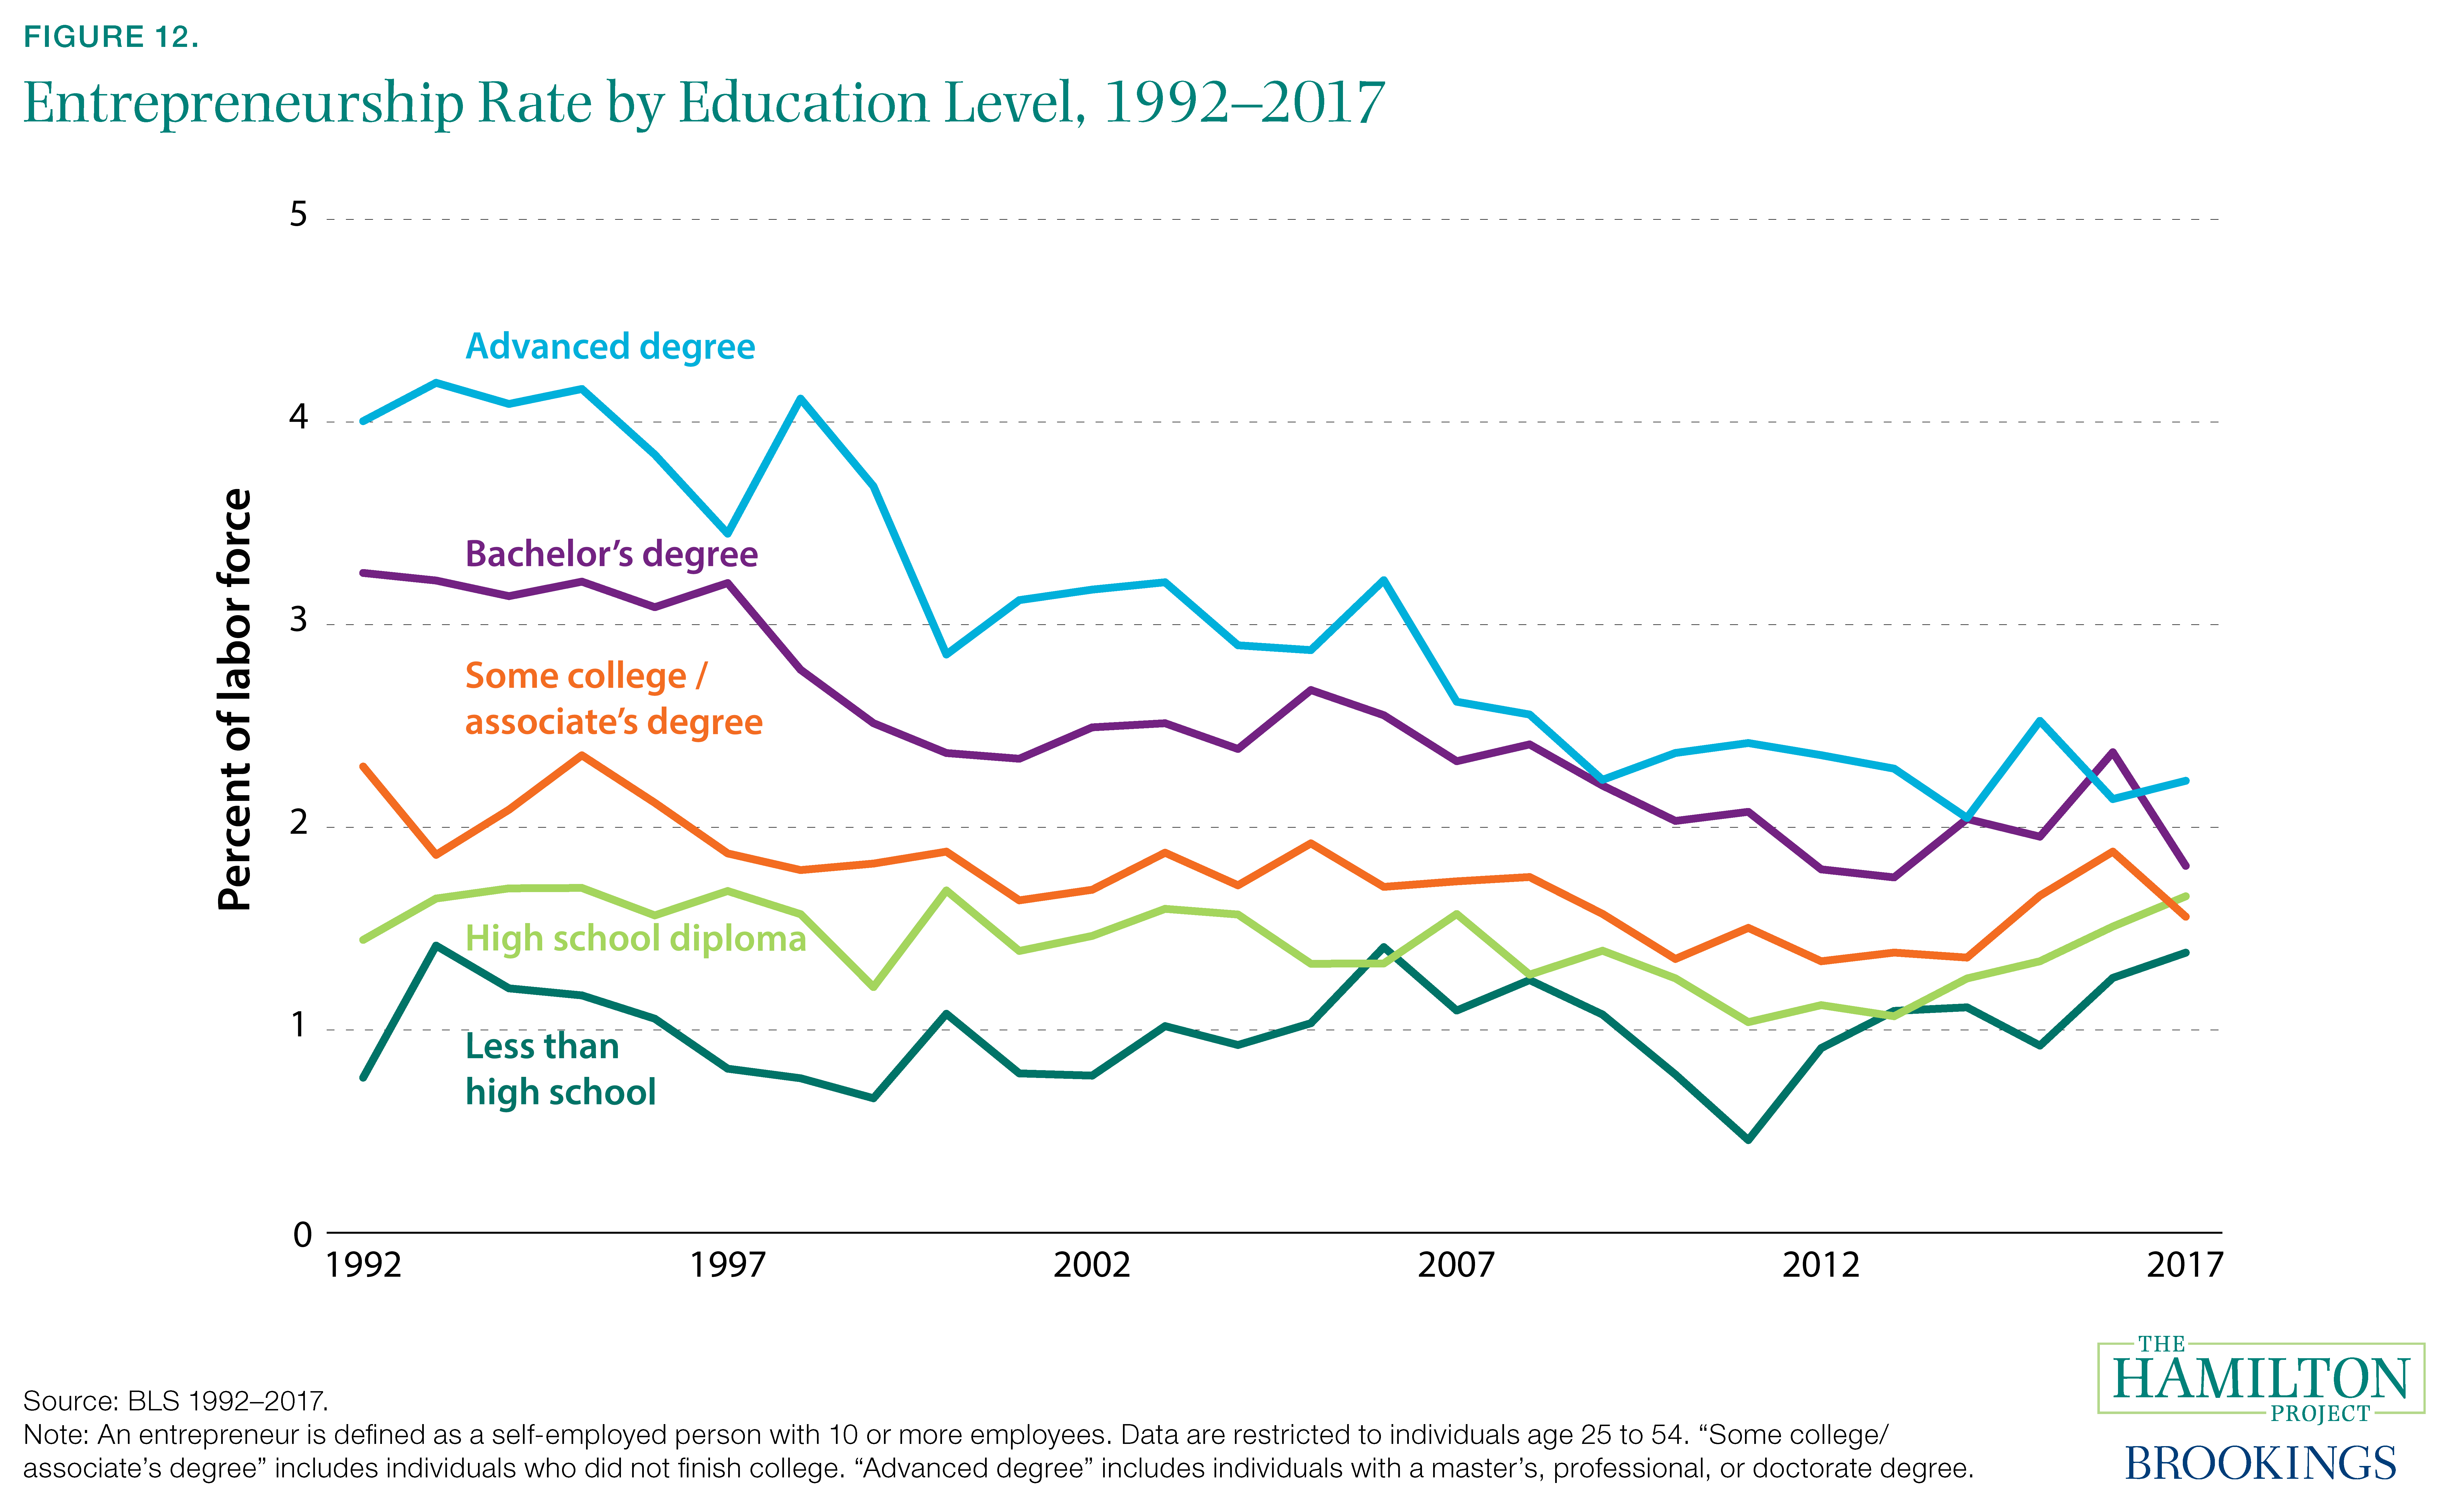 Figure 12. Entrepreneurship Rate by Education Level, 1992–2017